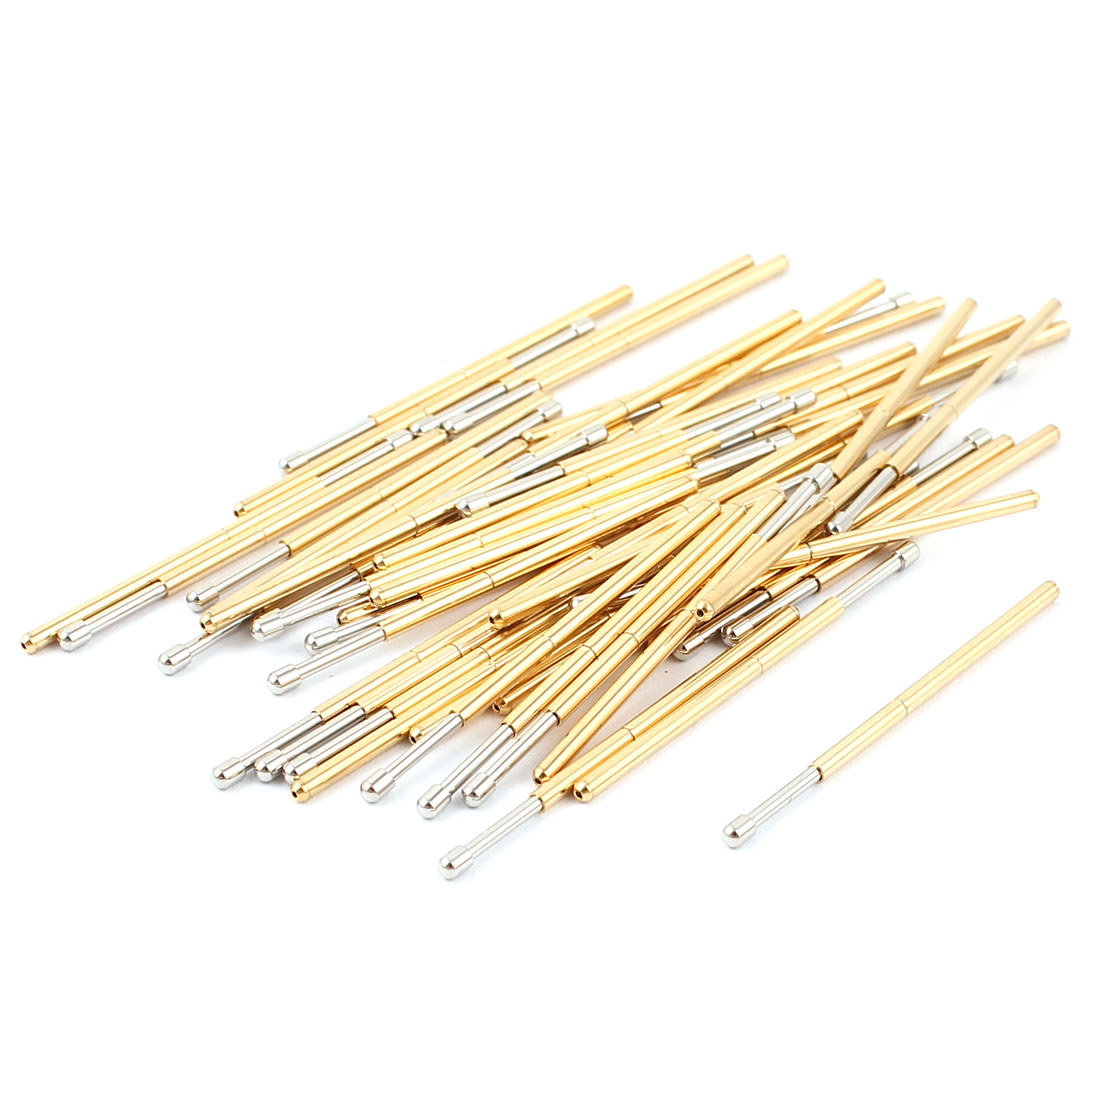 50 Pcs P100-D2 1.5mm Spherical Tip Spring Testing Probes Pin 33.3mm Length